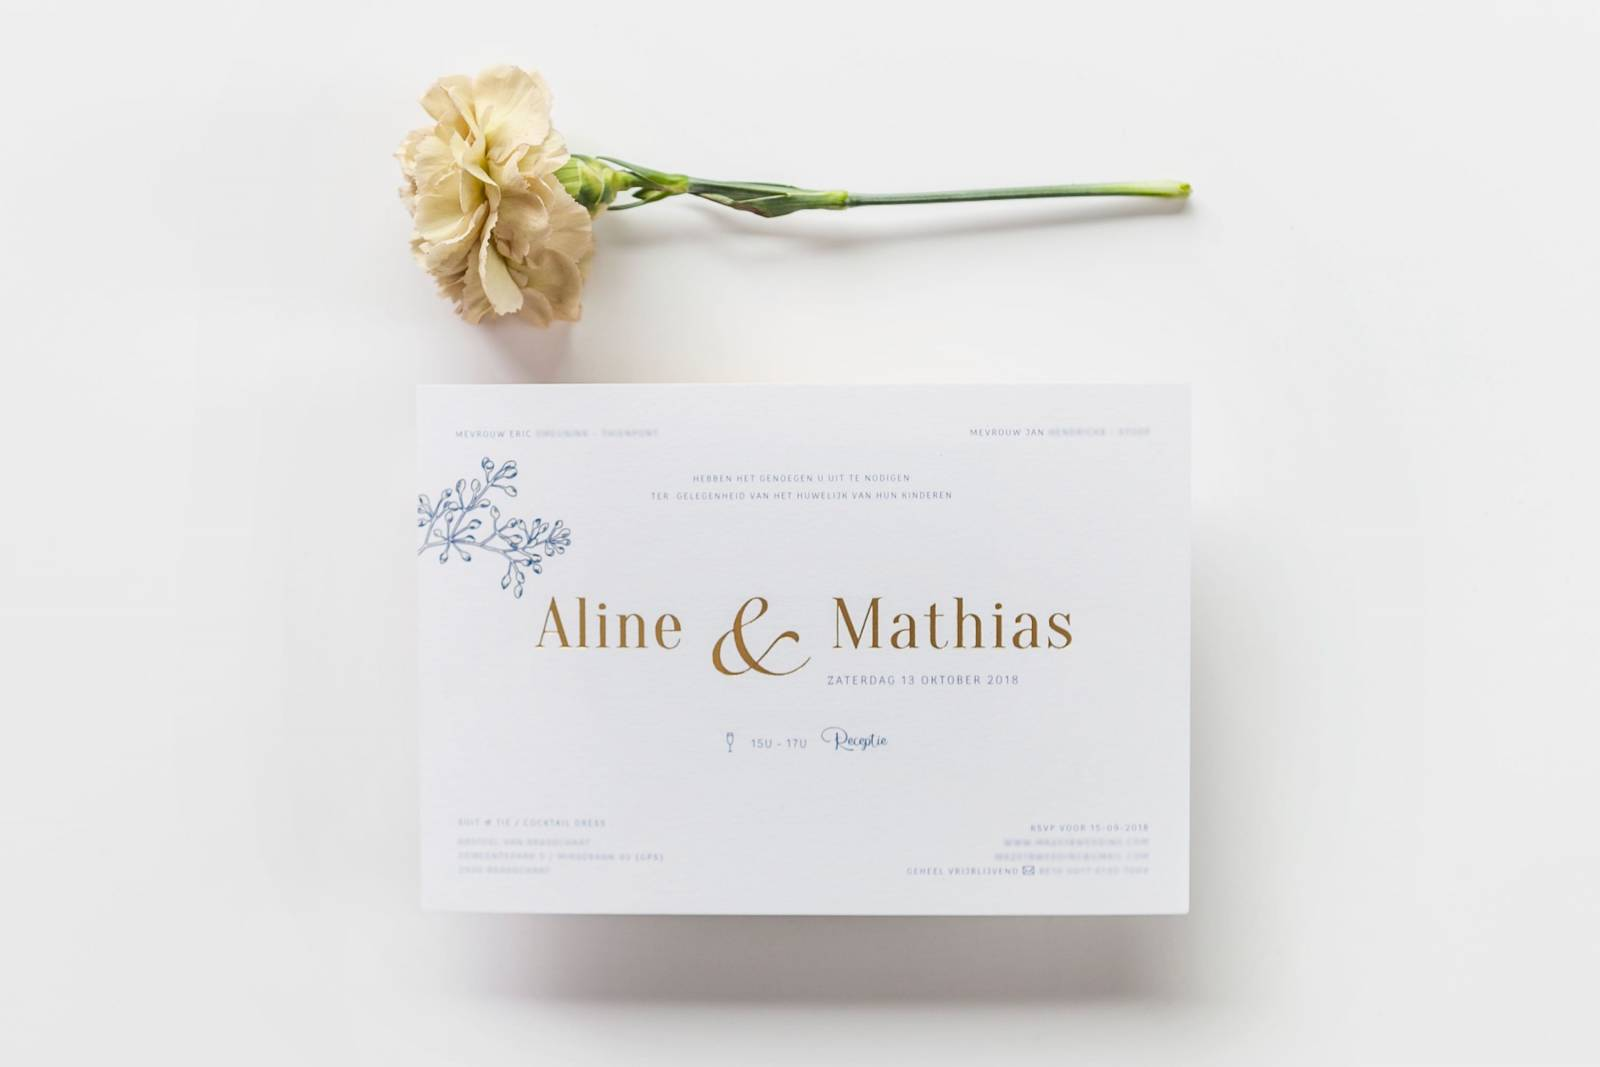 Designcards - Stationery - Trouwuitnodigingen - House of Weddings - 26